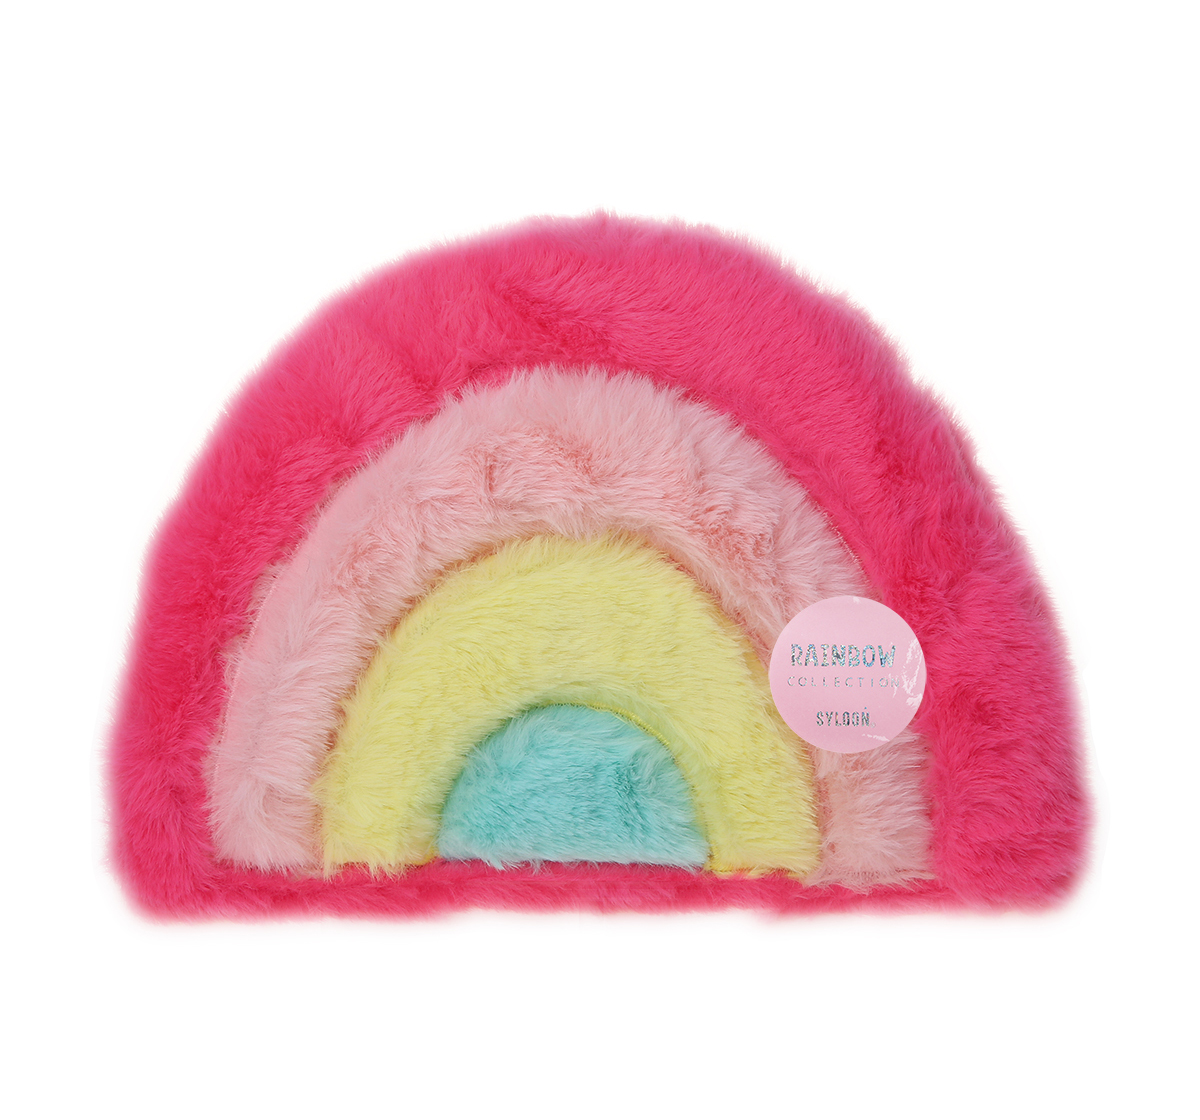 Syloon   Syloon Rainbow - Plush Notebook Study & Desk Accessories for Kids age 5Y+